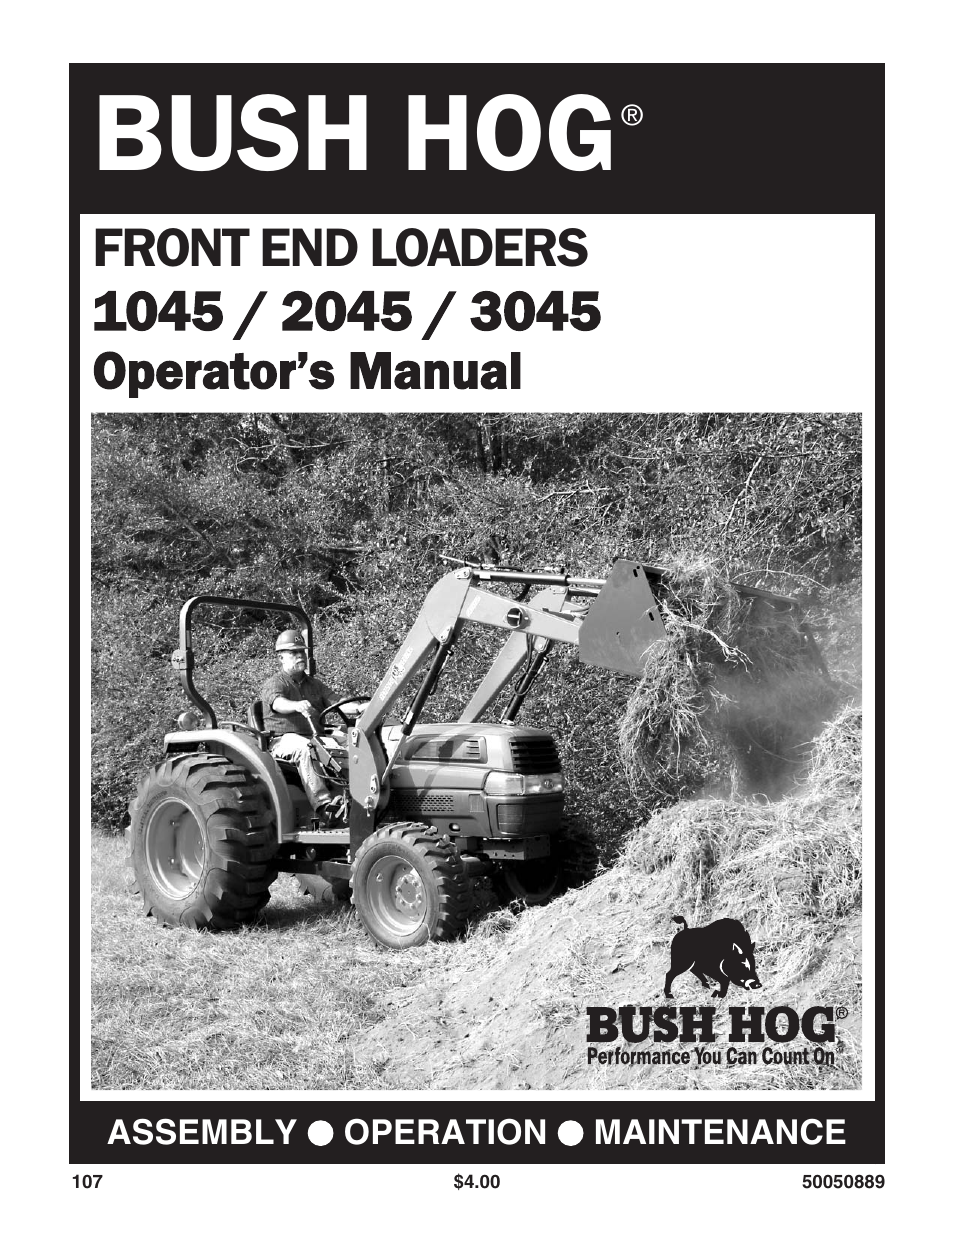 Bush Hog 3045 User Manual | 45 pages | Also for: 1045